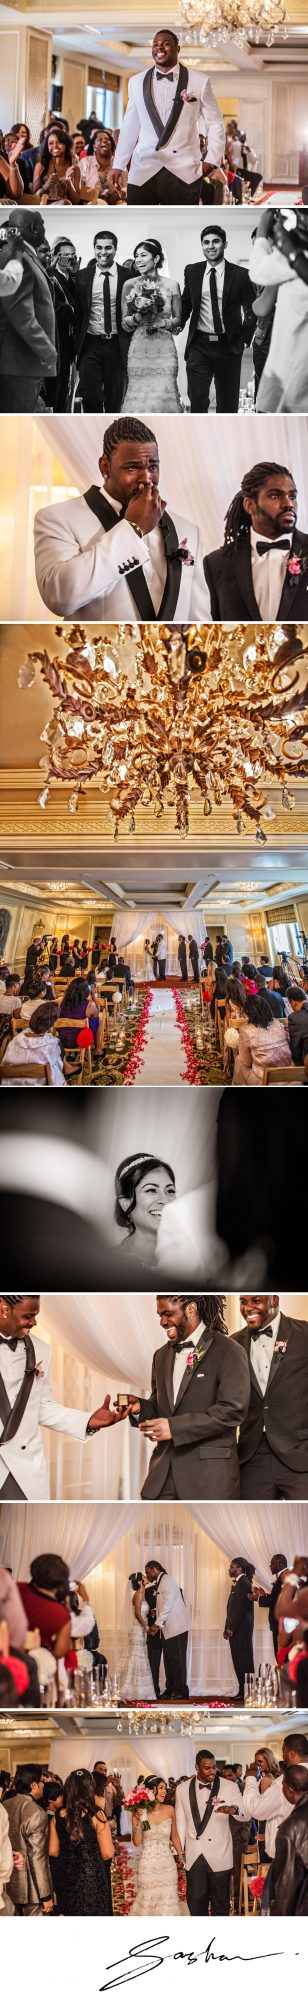 ritz carlton san francisco wedding